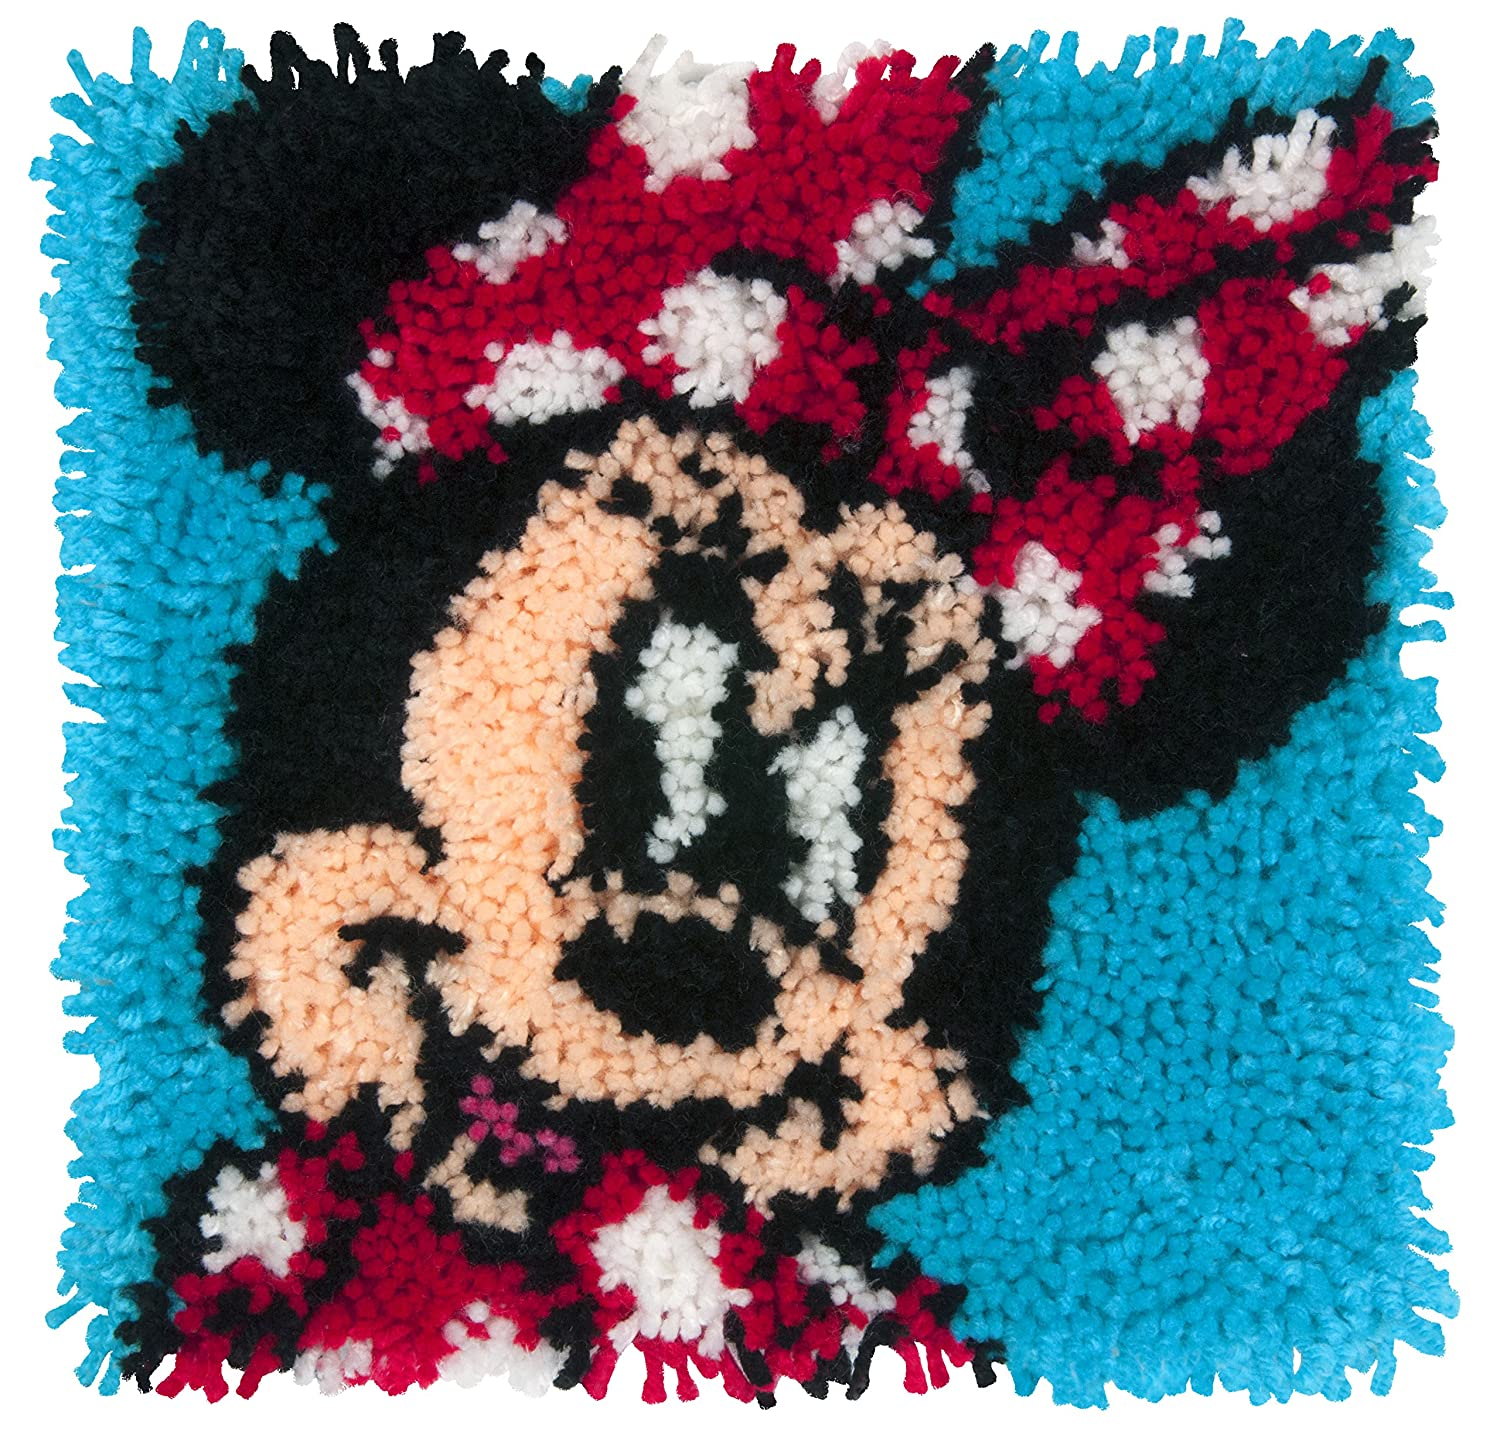 Dimensions Disney Minnie Mouse Latch Hook Craft Kit for Kids 12 x 12